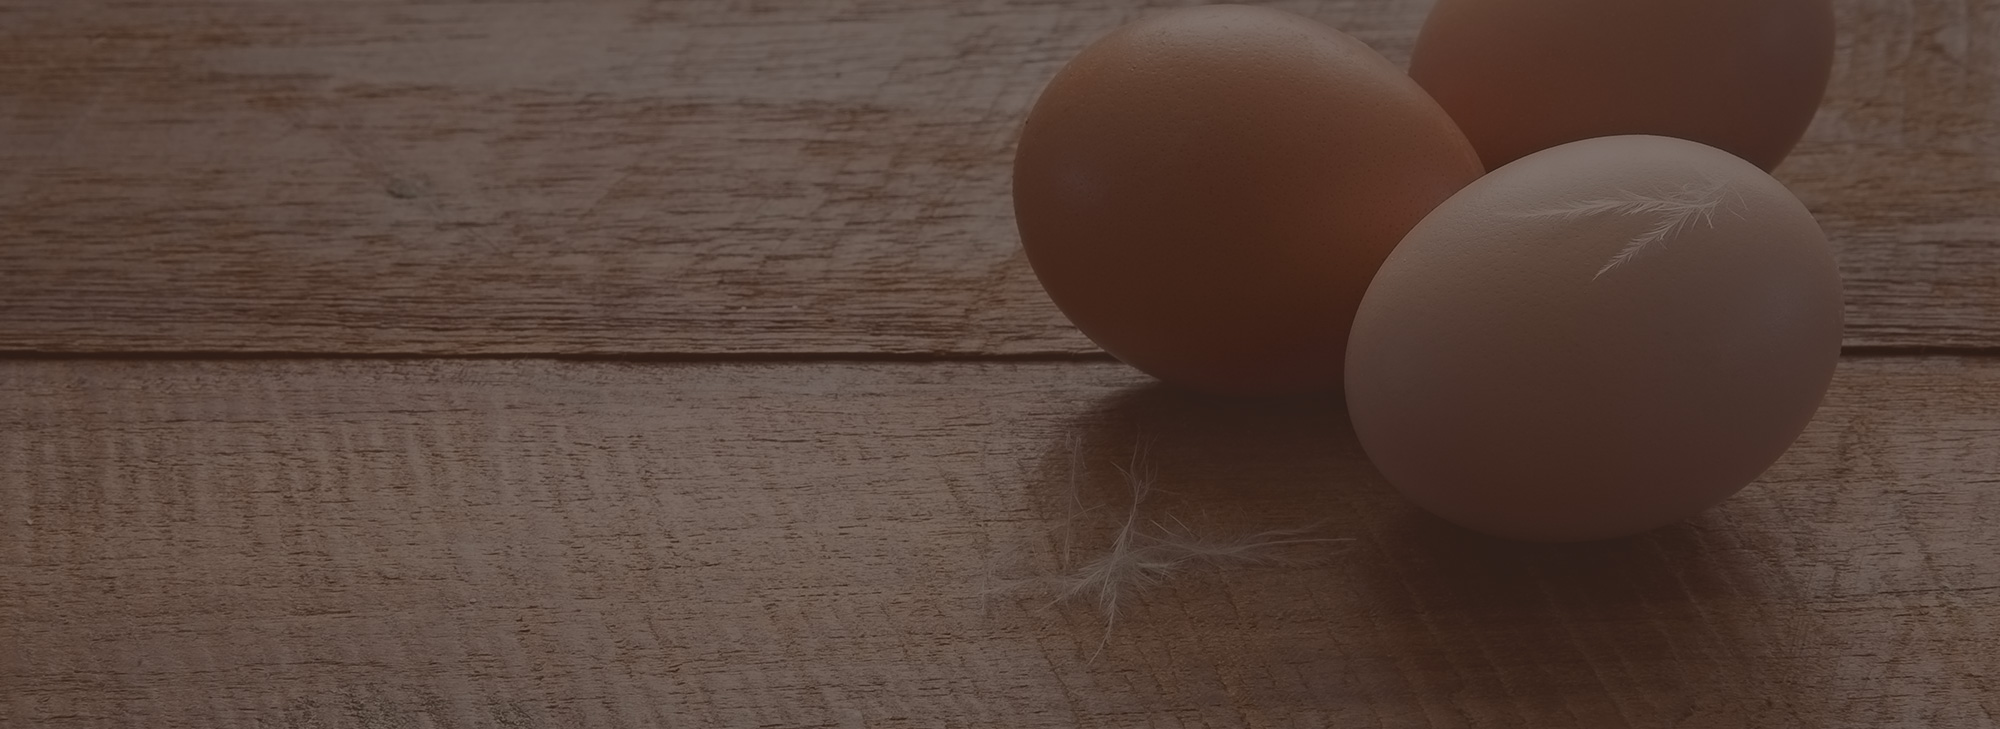 How Do Egg Farmers Treat Their Hens? | Sauder's Eggs